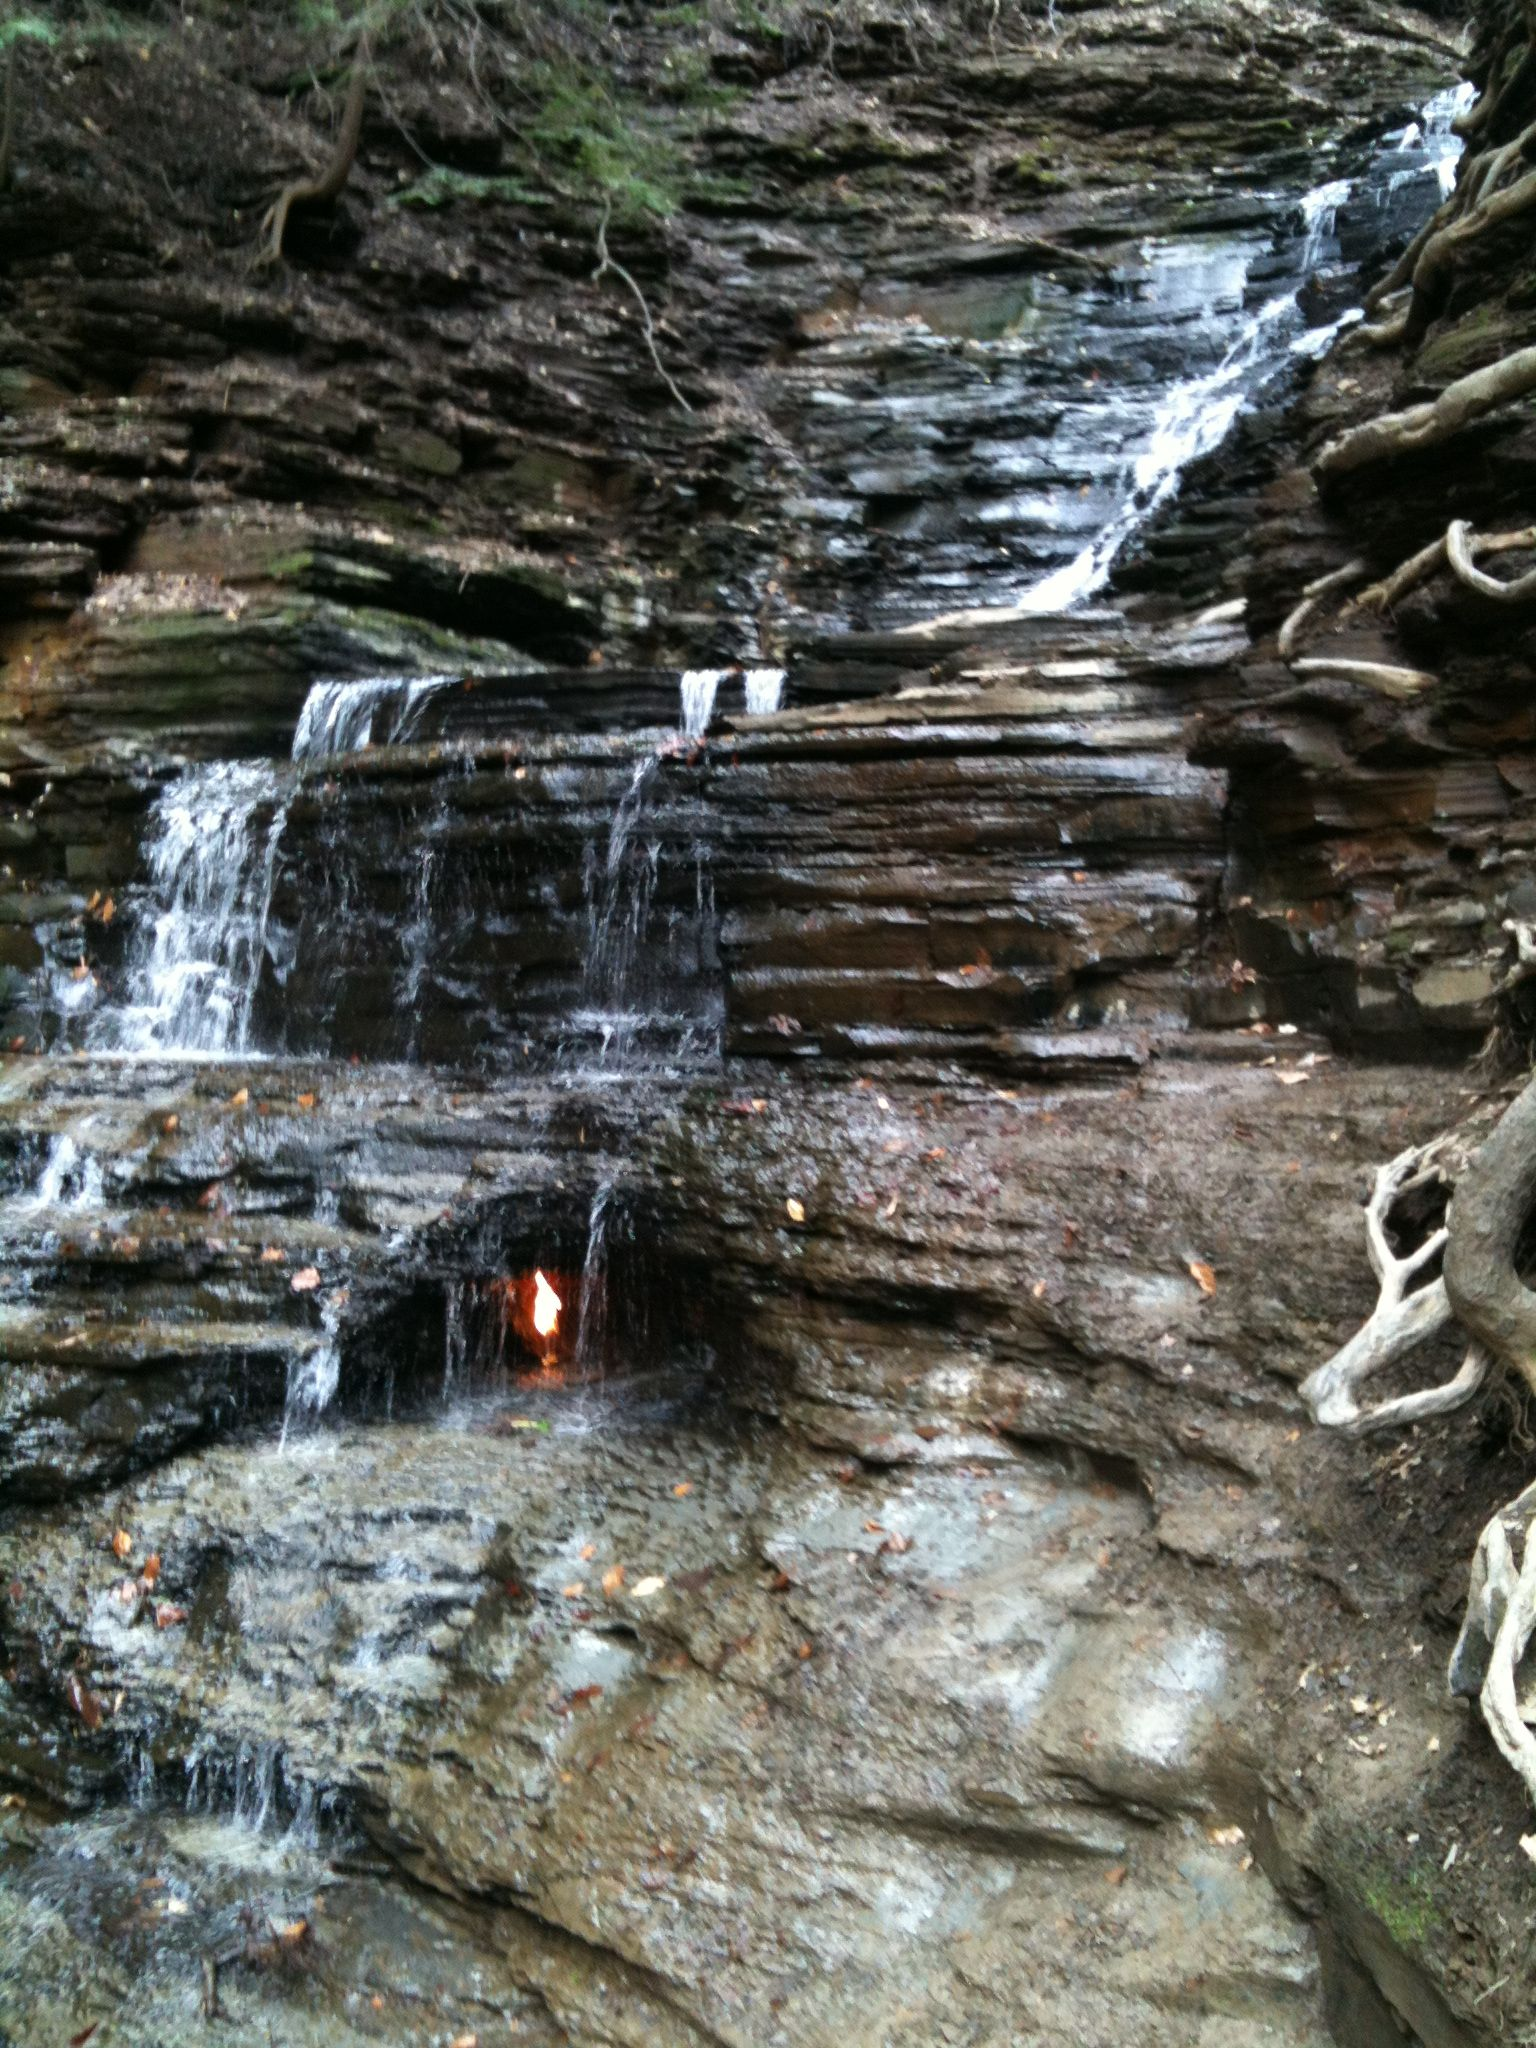 eternal flame  gaslight falls in chestnut ridge park  orchard park  ny